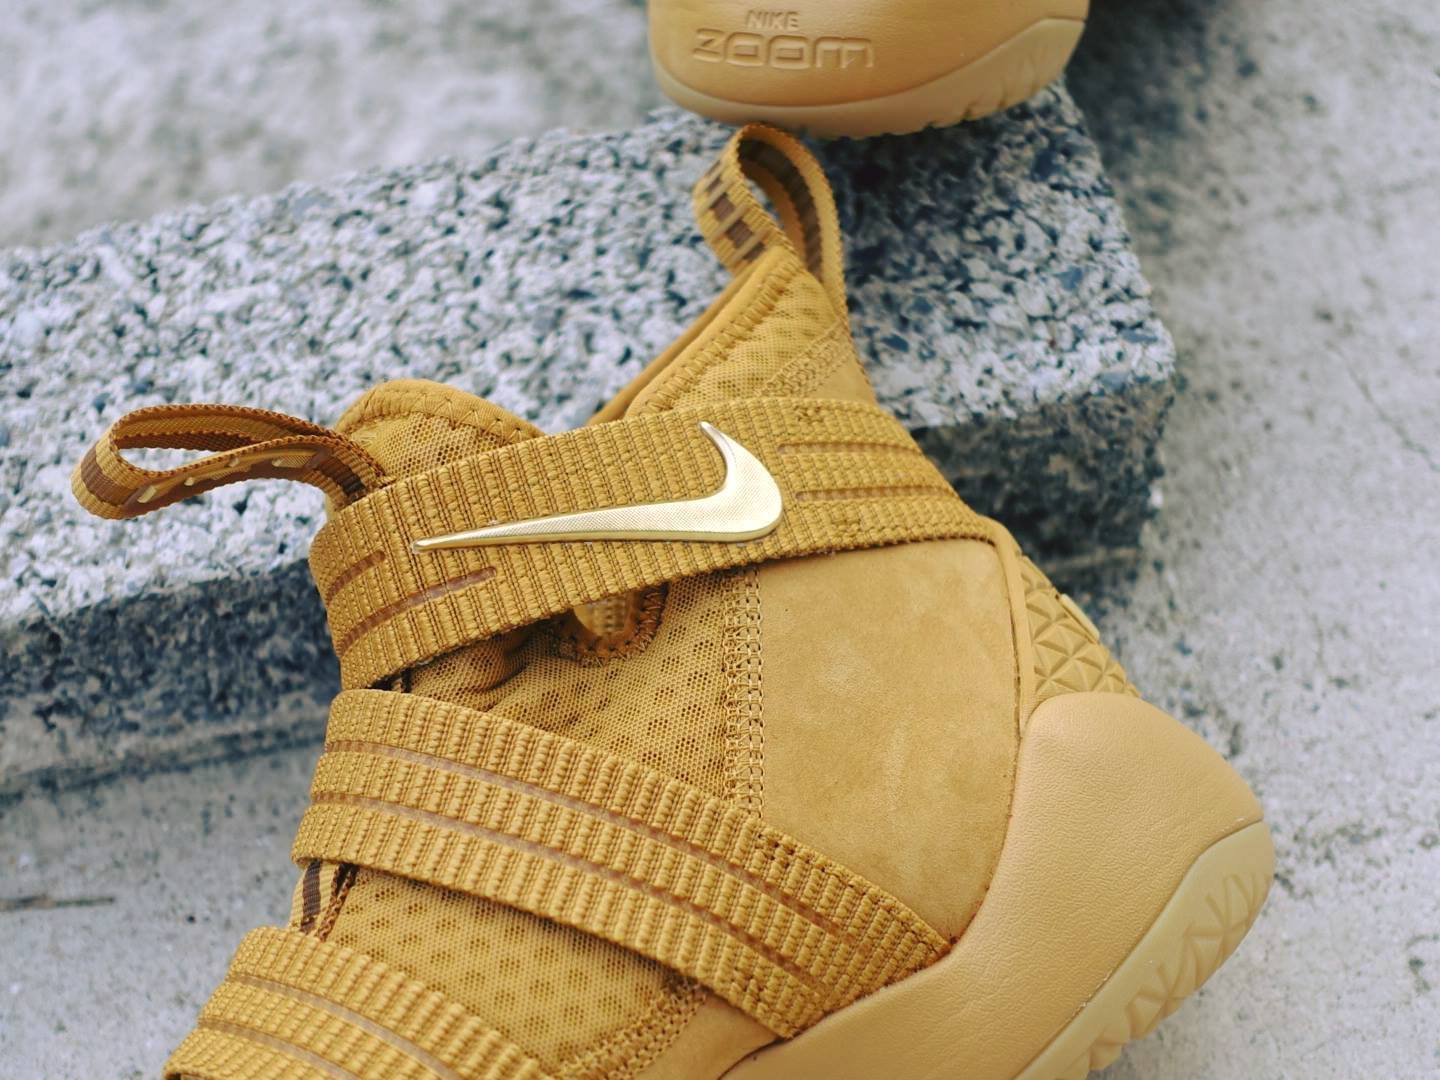 19cdb8162a2 ... Nike LeBron Soldier 11 SFG Wheat Release Date 897647-700 (5) ...